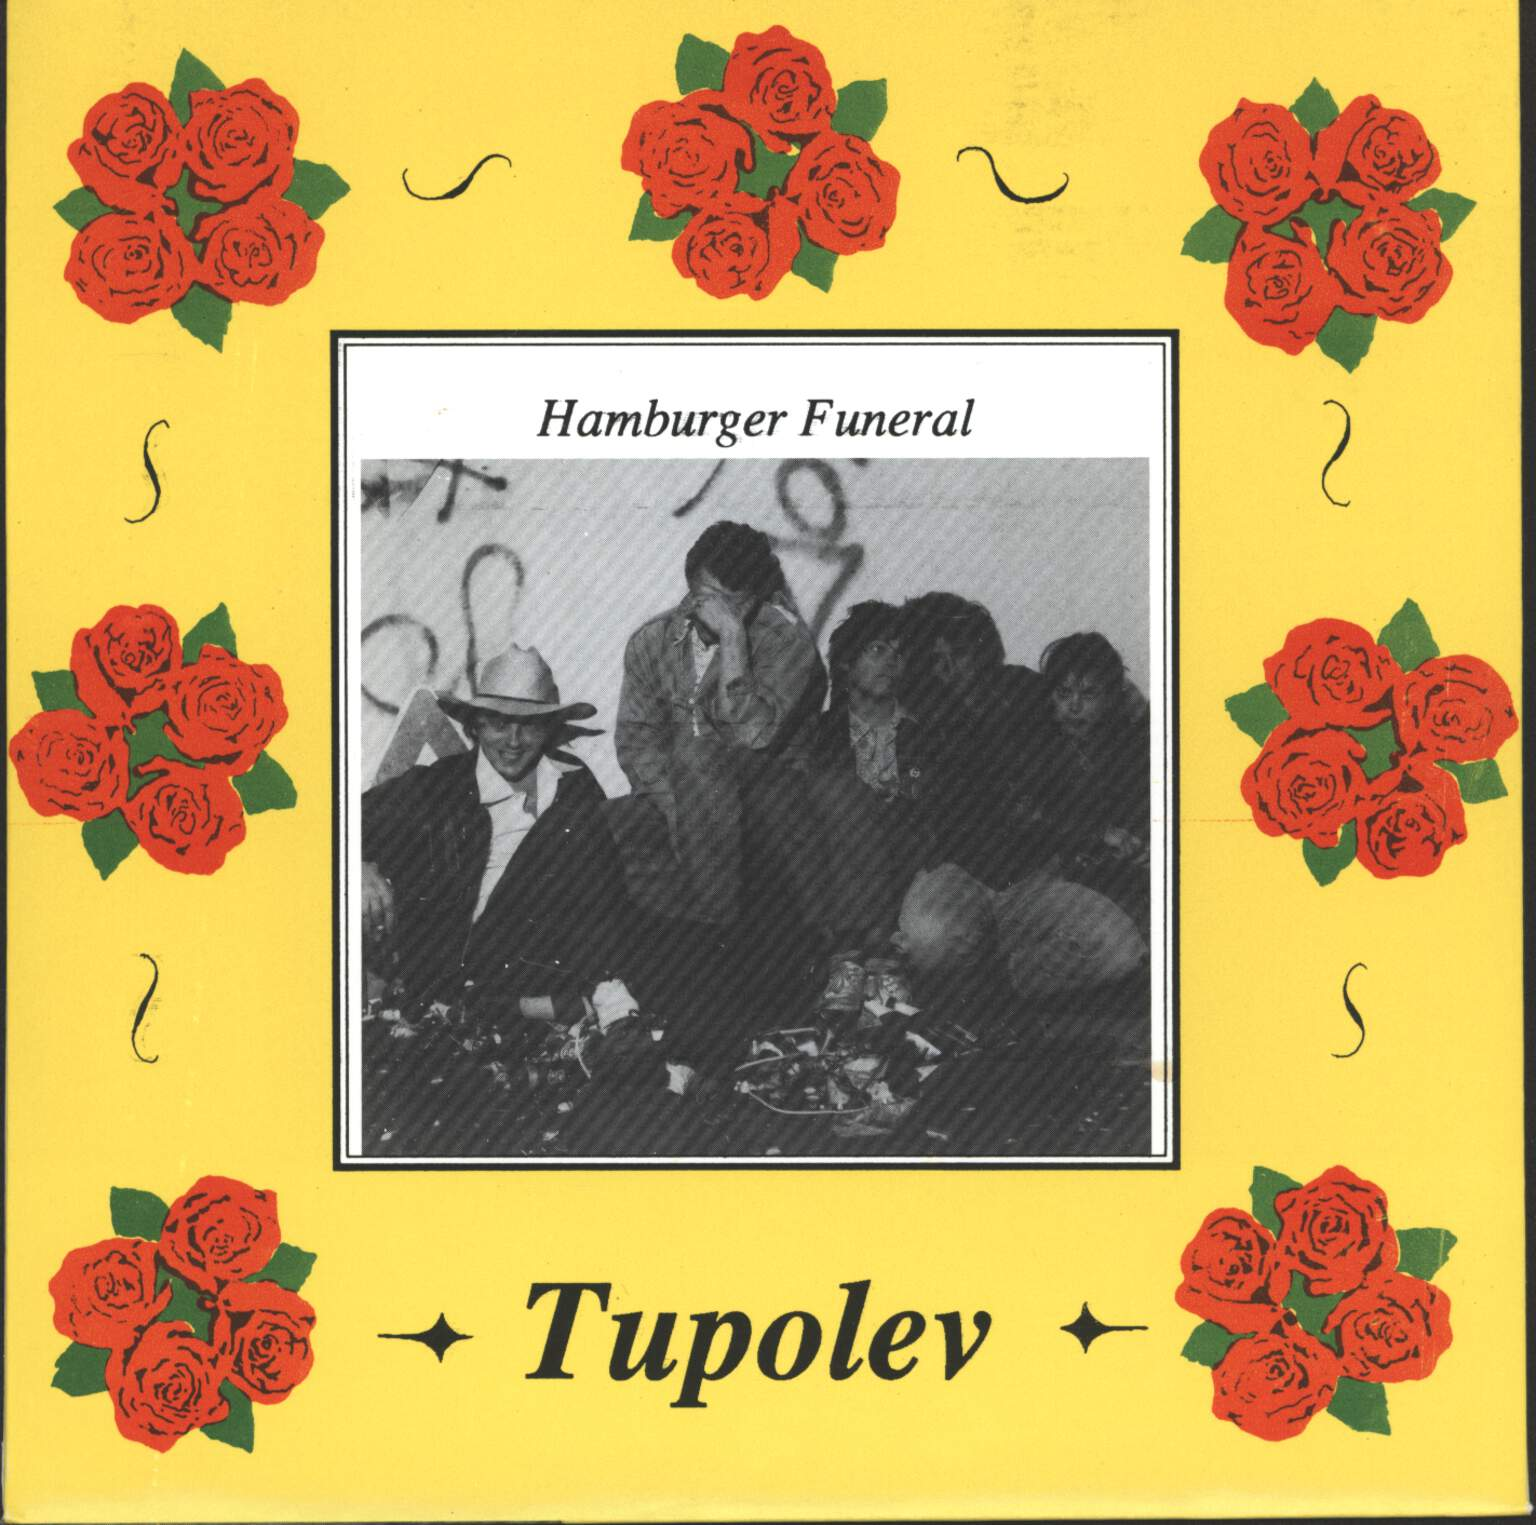 "Tupolev: Hamburger Funeral, 7"" Single (Vinyl)"